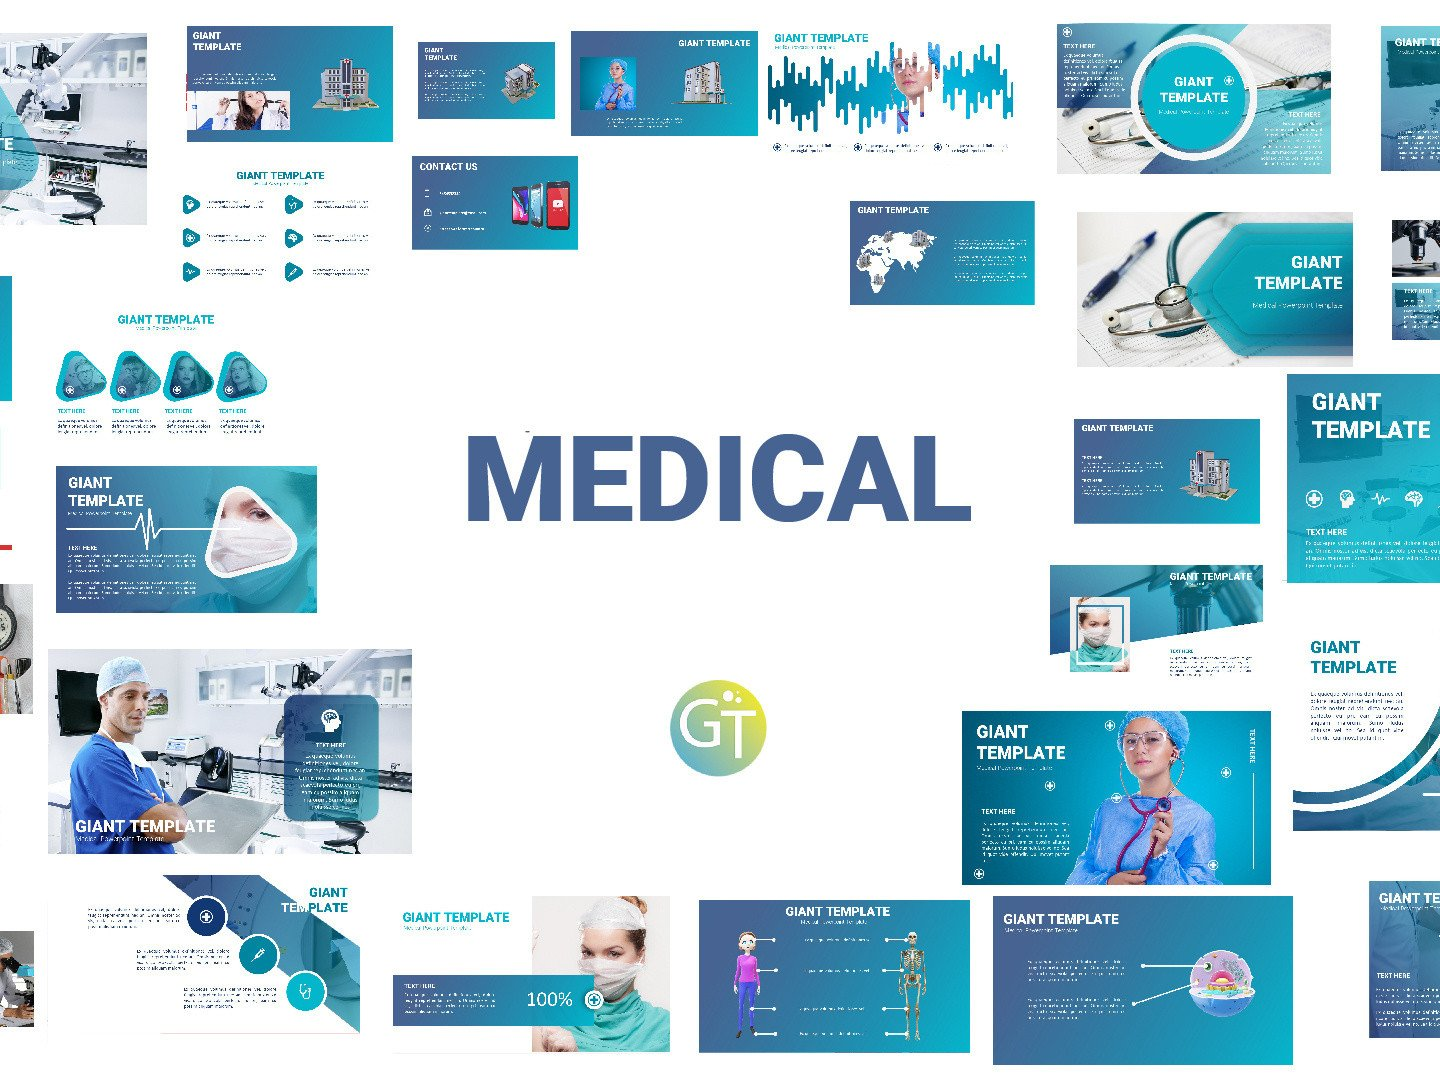 Ppt Template Free Download Medical Powerpoint Templates Free Download by Giant